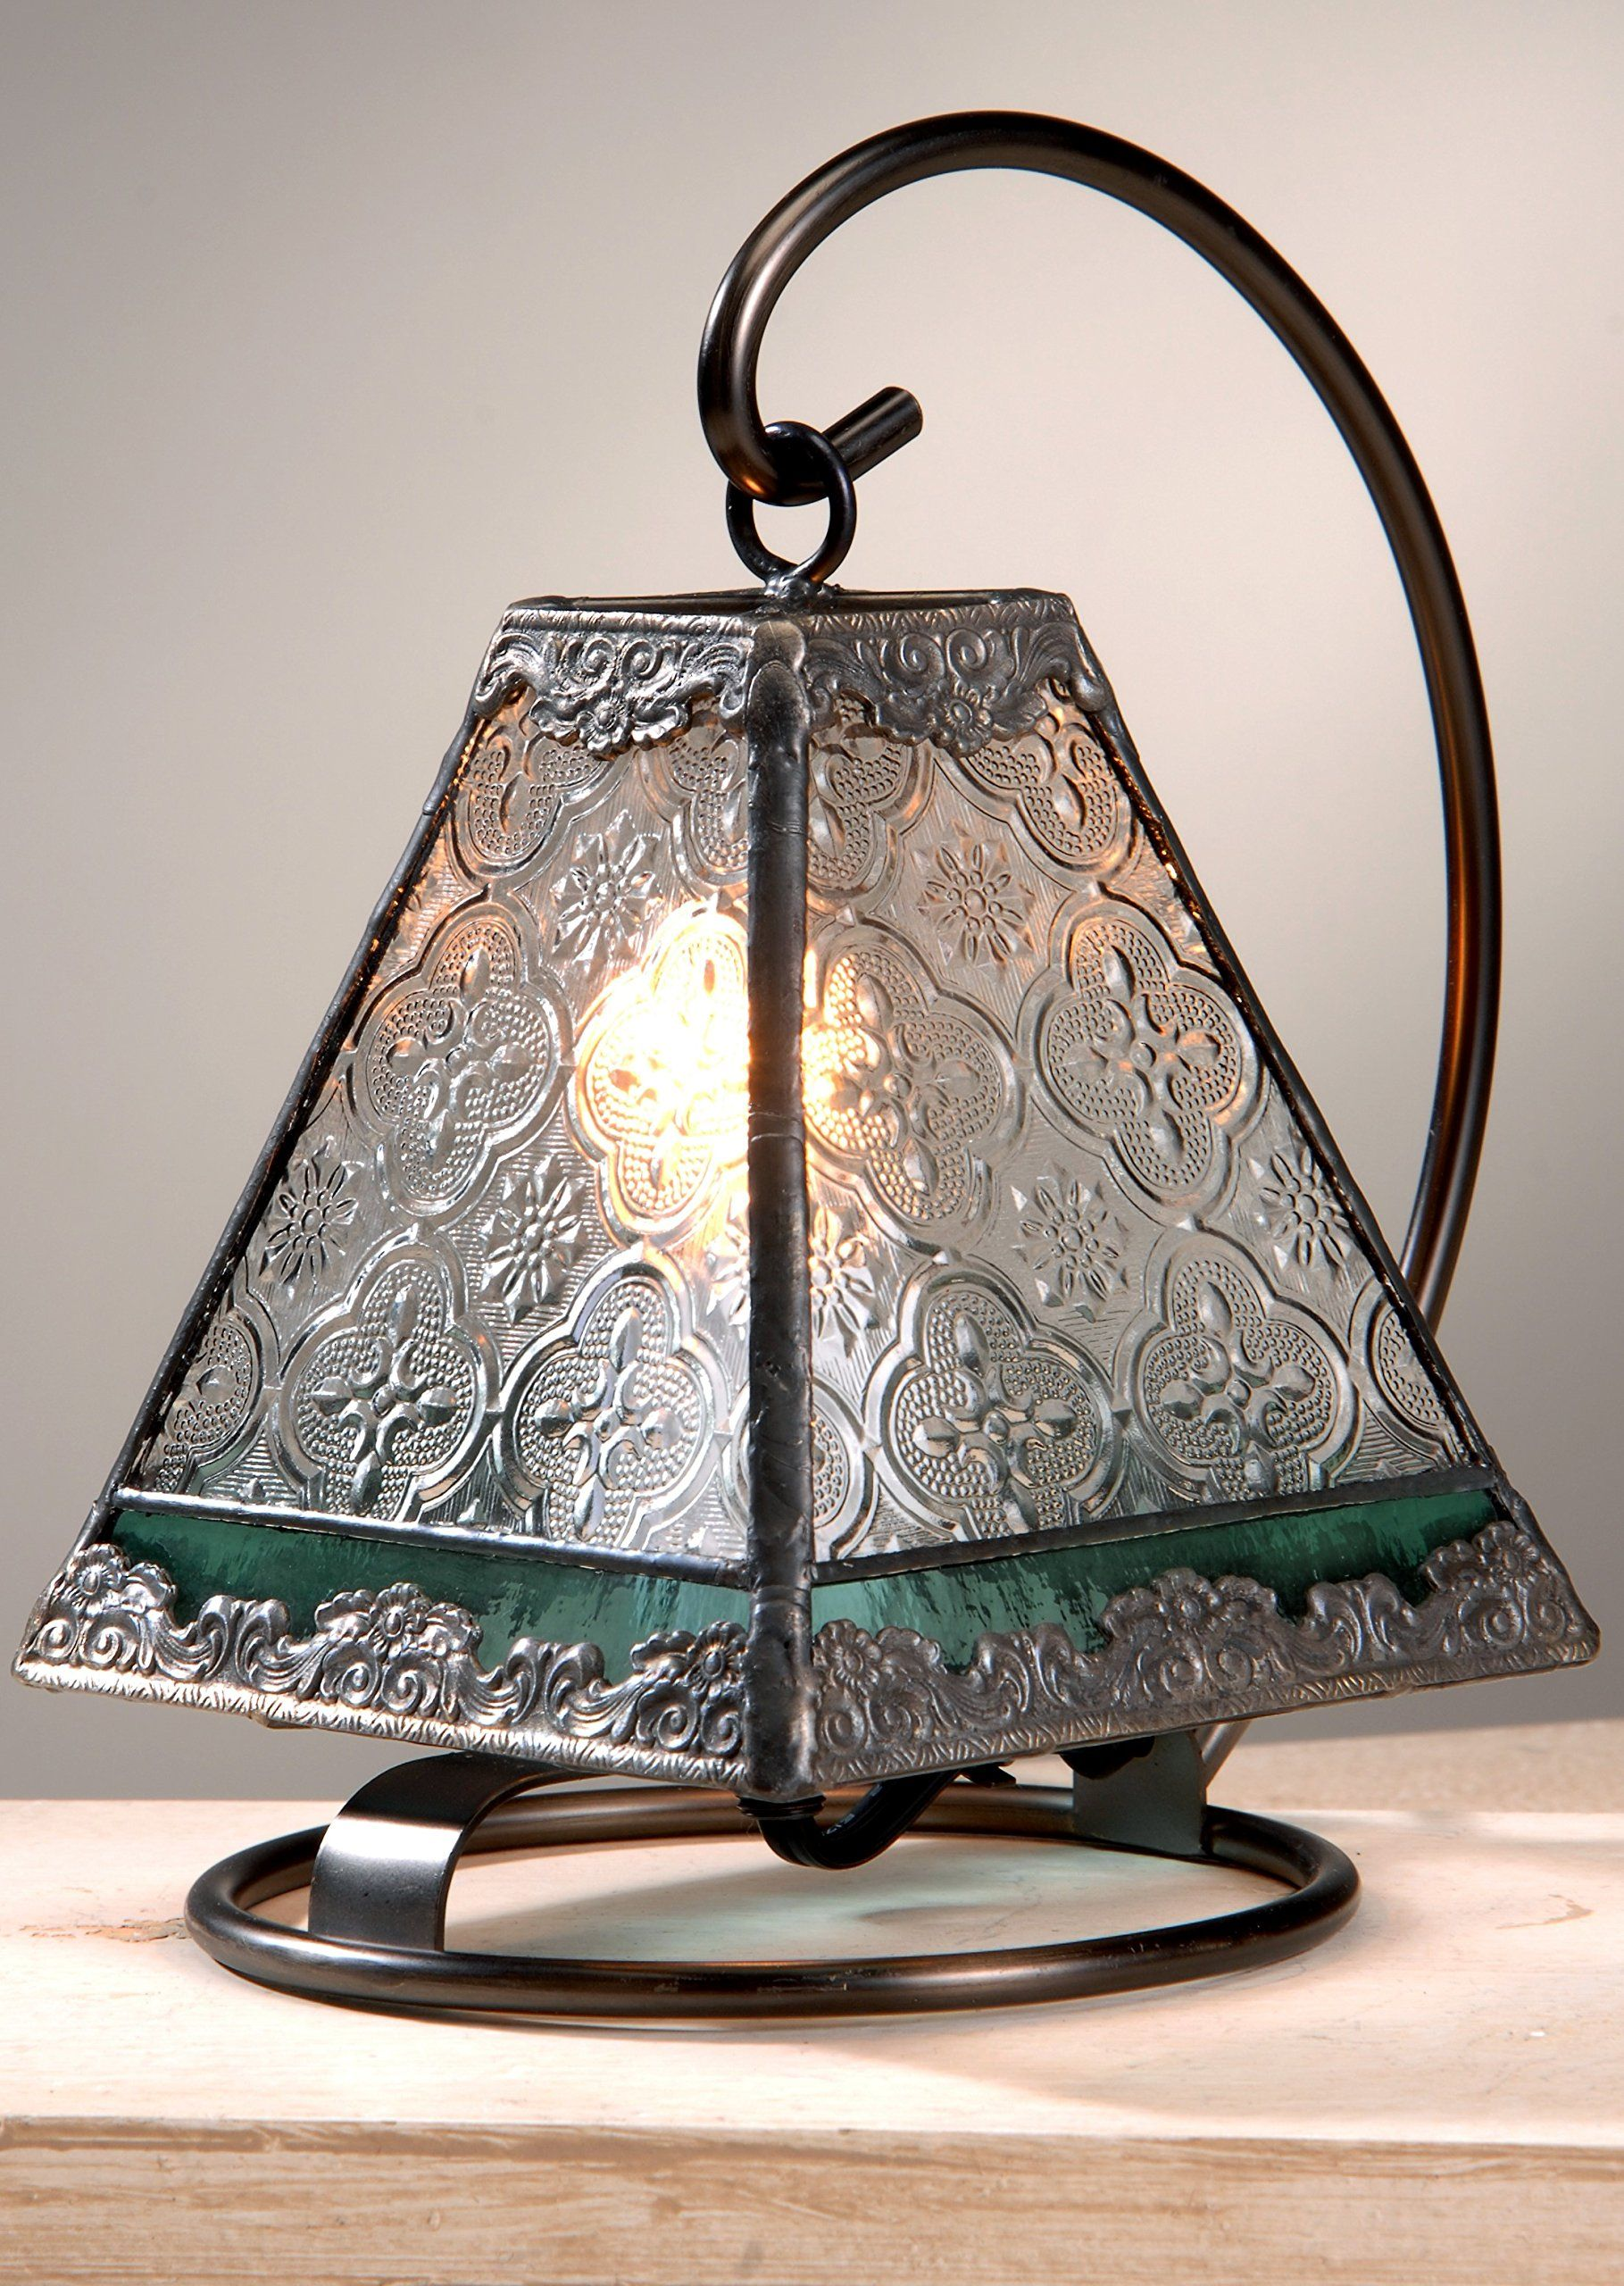 light express memory remembrance of condolence sympathy lamps hummingbird lamp tiffany blue in to style